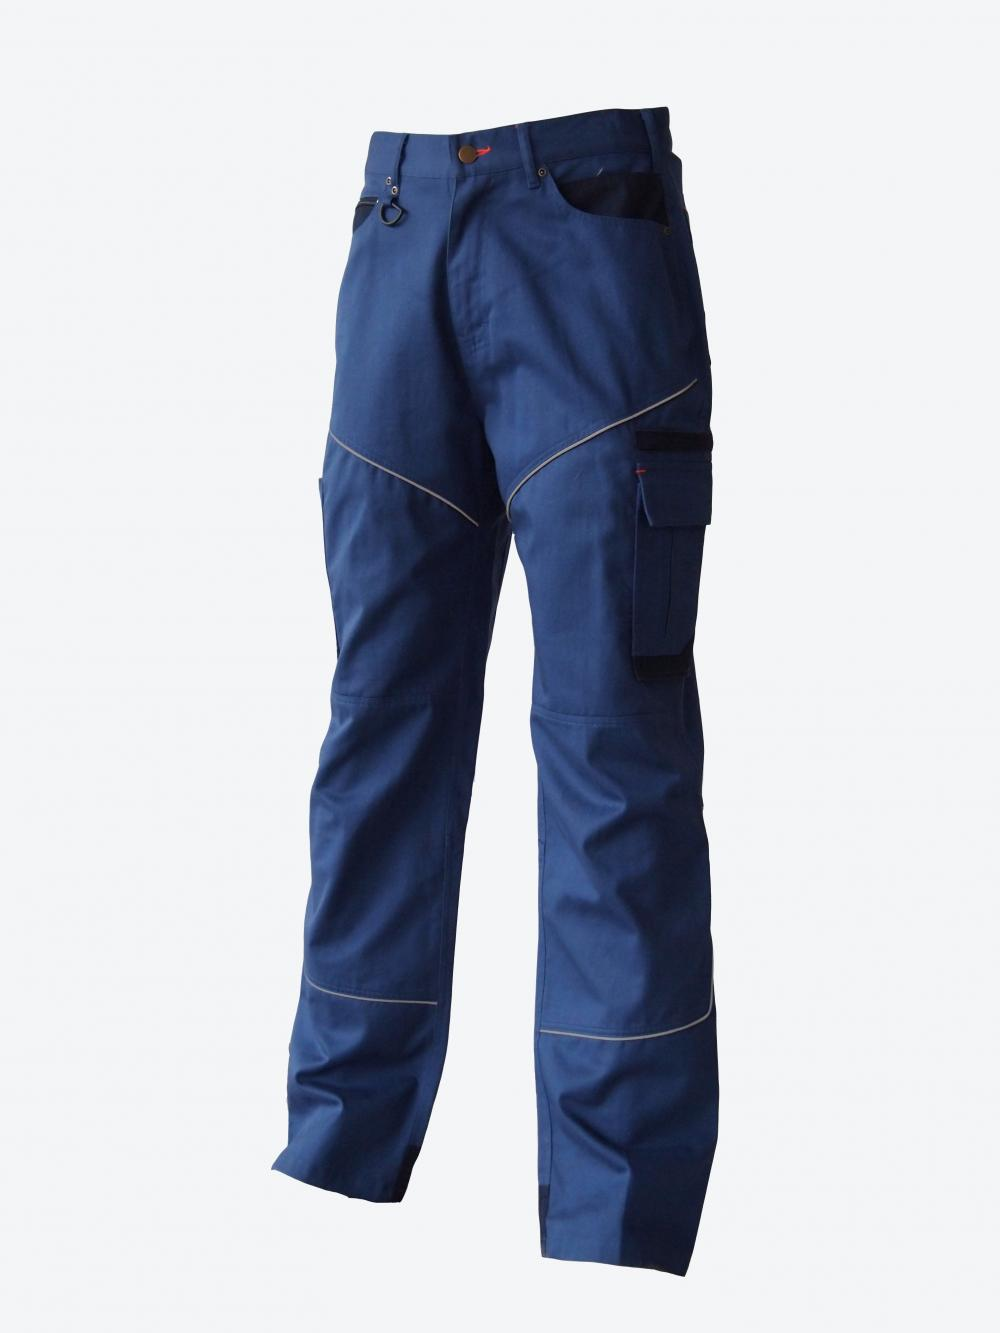 Construction Work Trousers